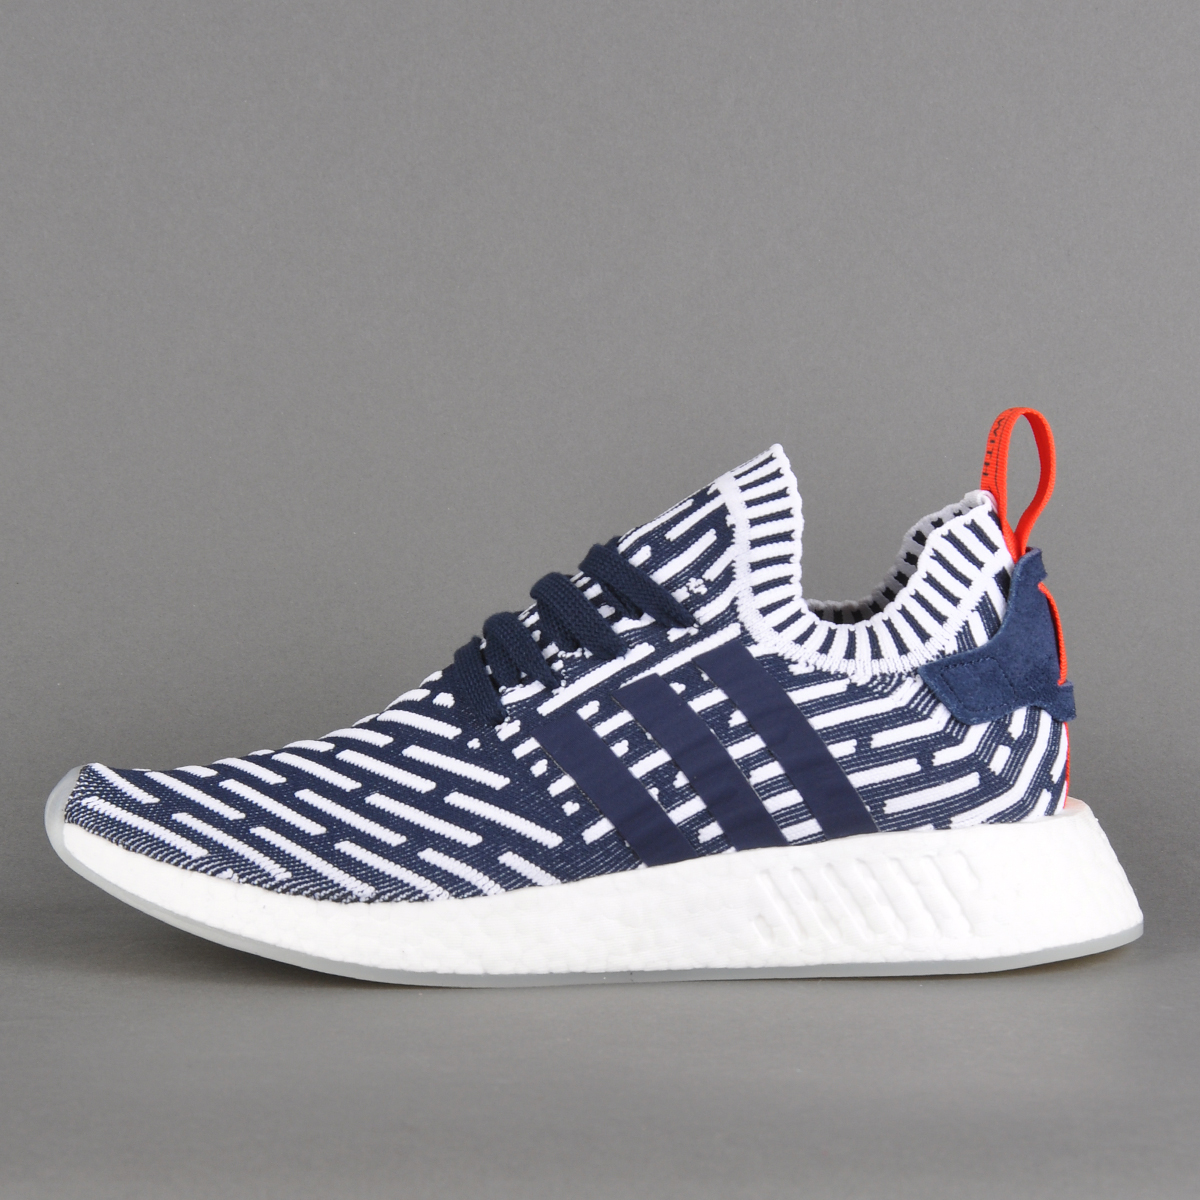 The adidas NMD R2 Primeknit Women 's Debuts Next Month